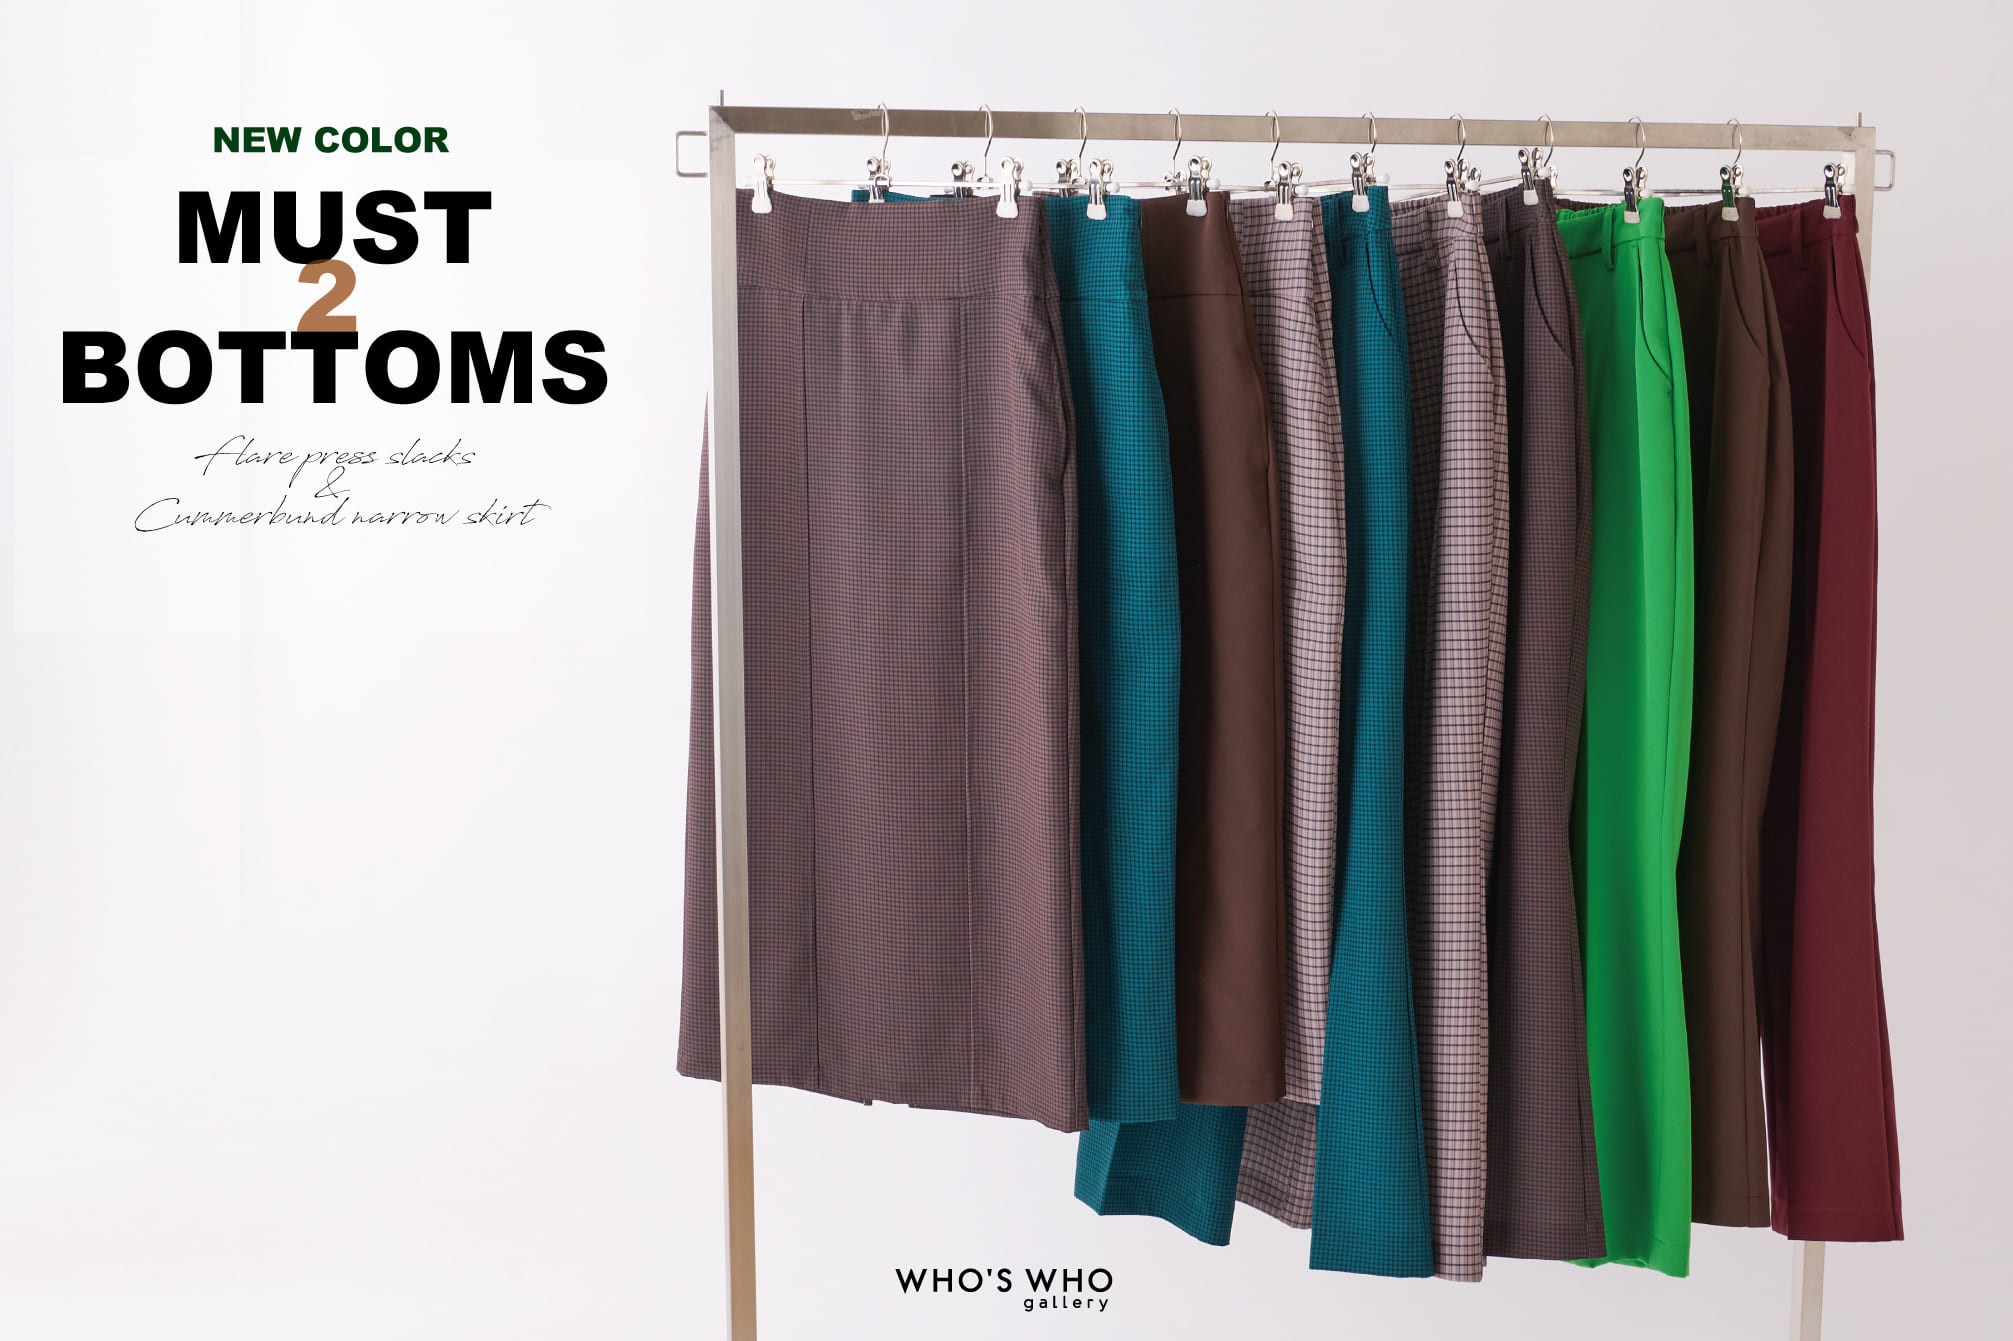 WHO'S WHO gallery NEW COLOR【MUST 2 BOTTOMS】